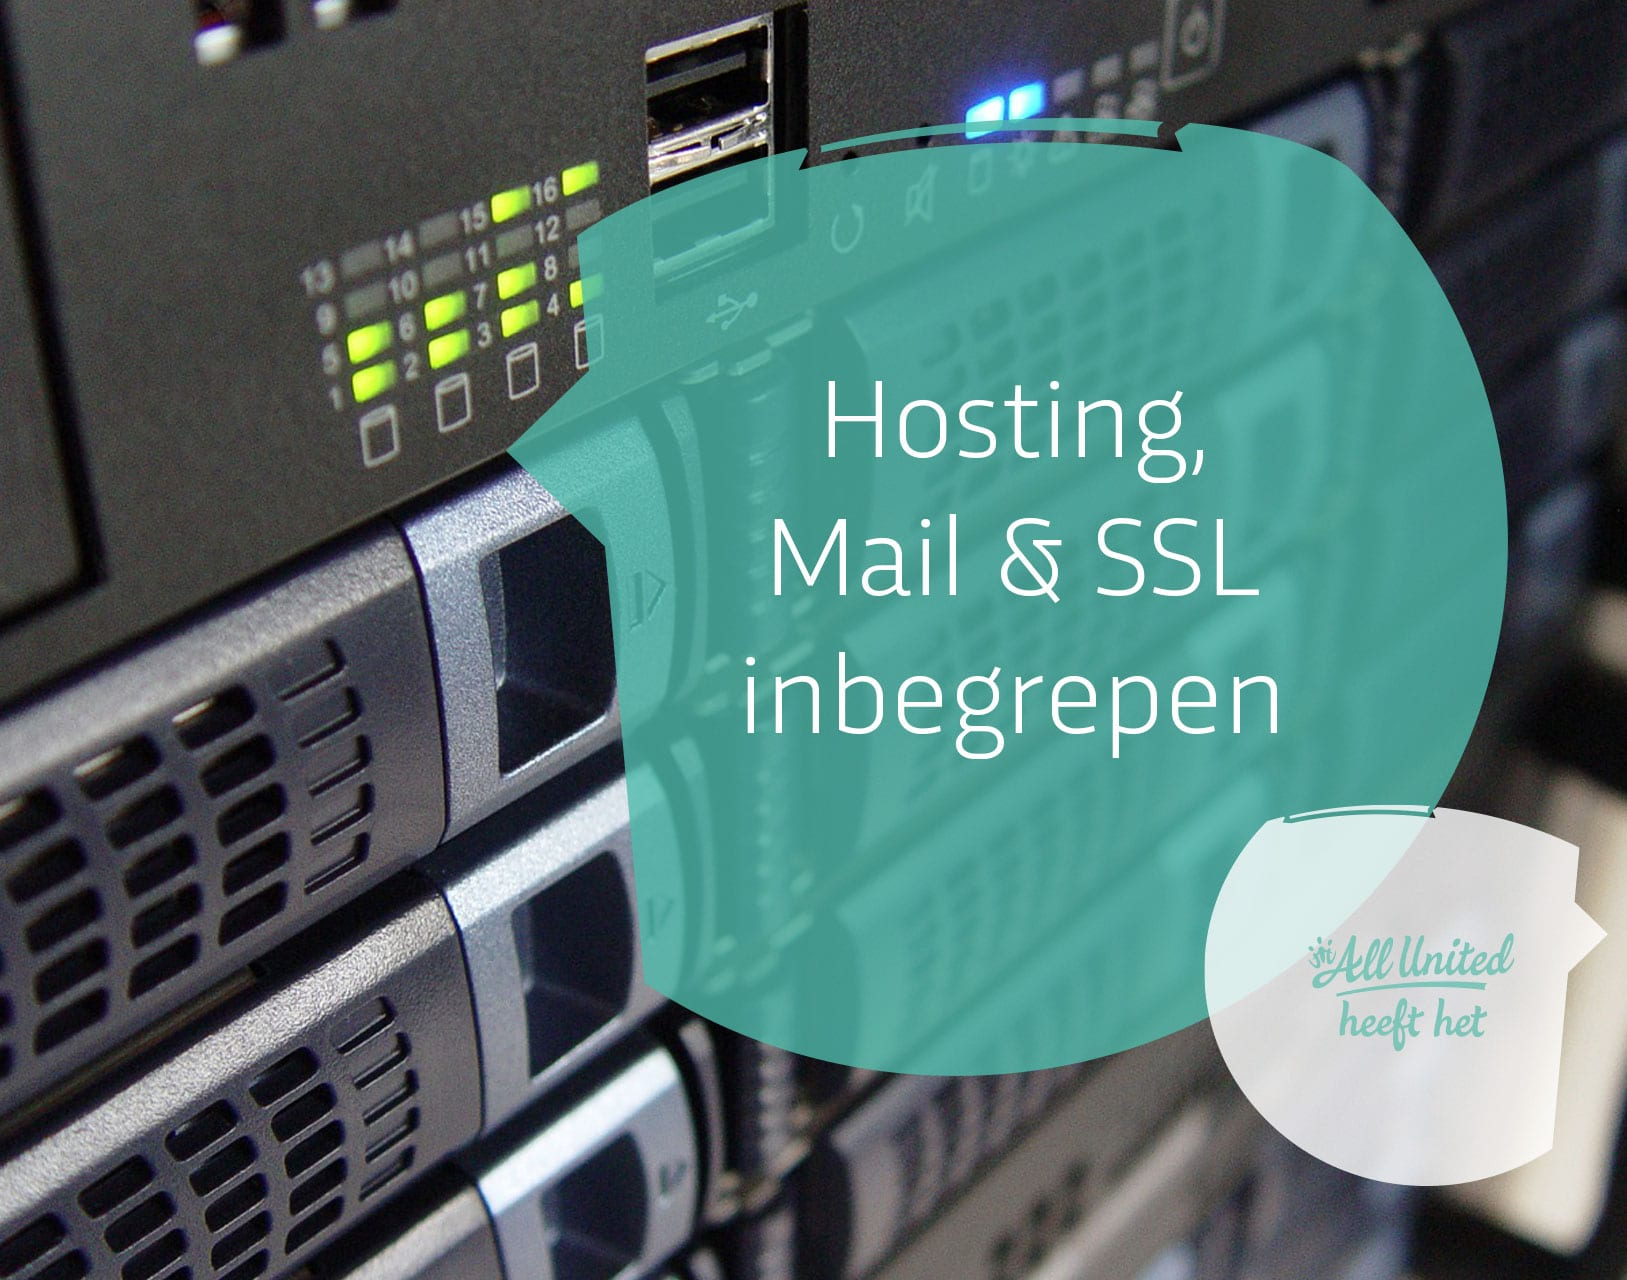 Hosting, SSL & Mail inbegrepen